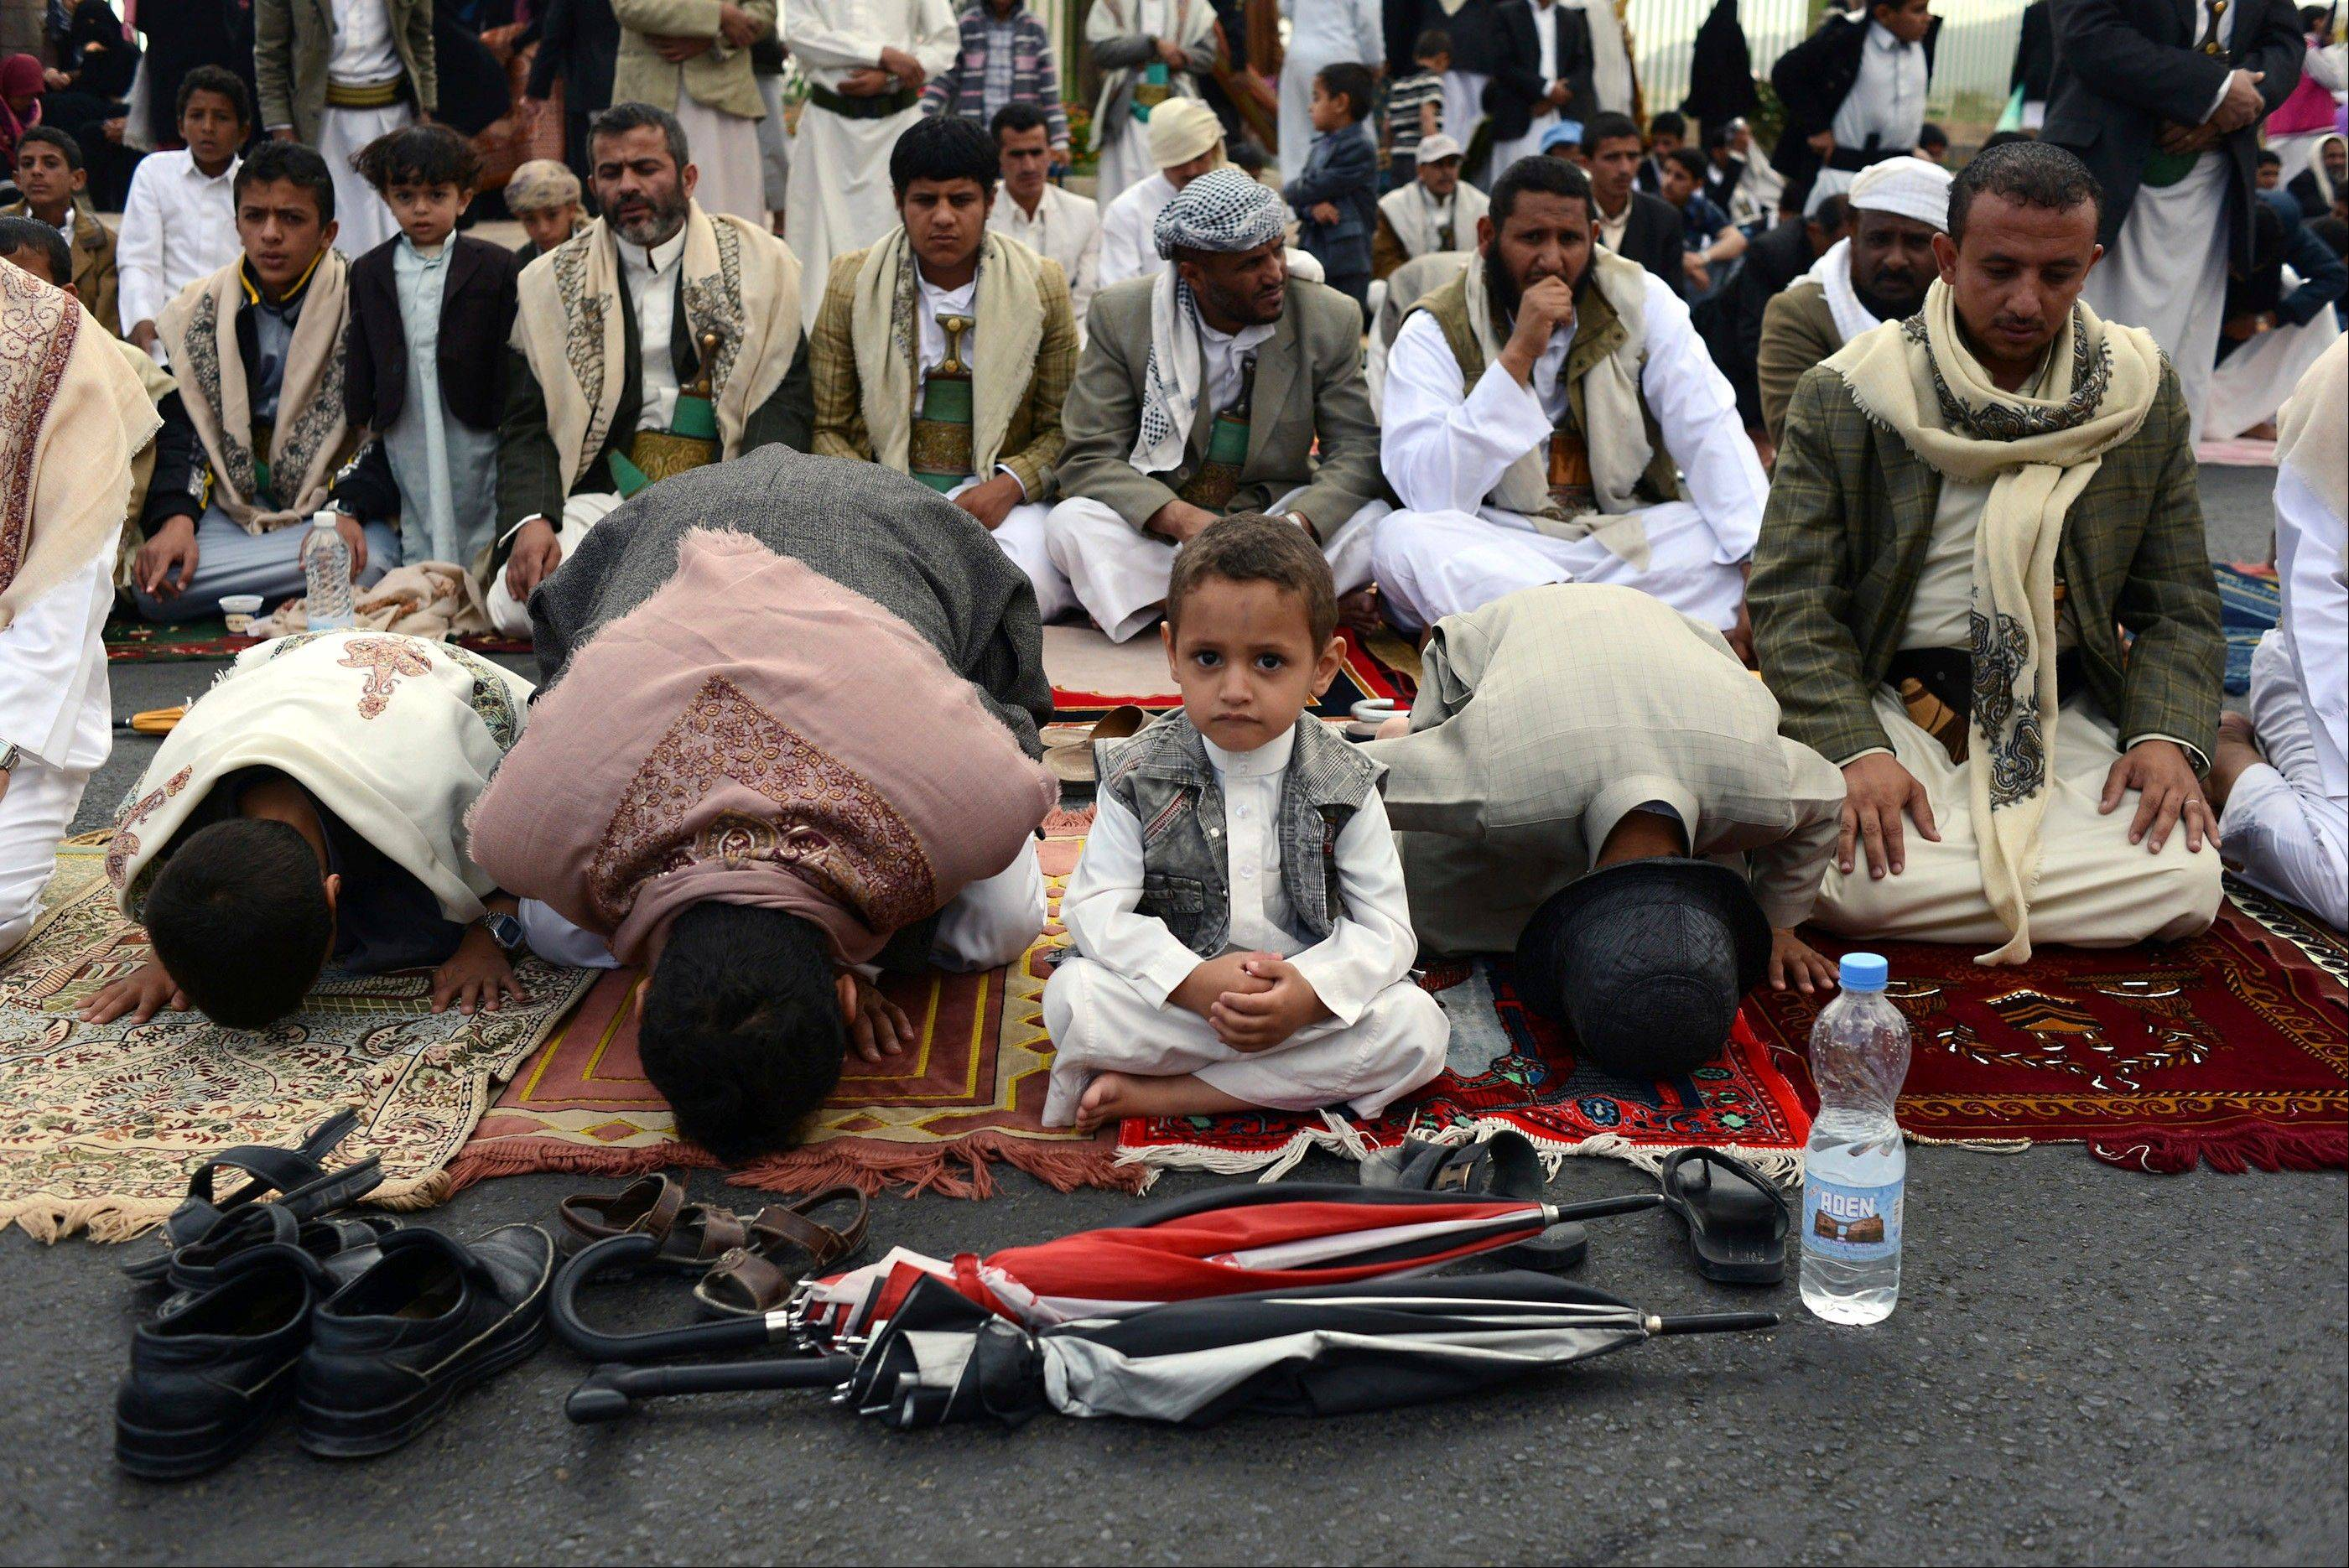 A Yemeni boy sits with his family while they pray Friday in Sanaa, Yemen. Since the beginning of the revolution, the Friday prayer has been held on 60 Street near Sanaa University, drawing thousands of people.